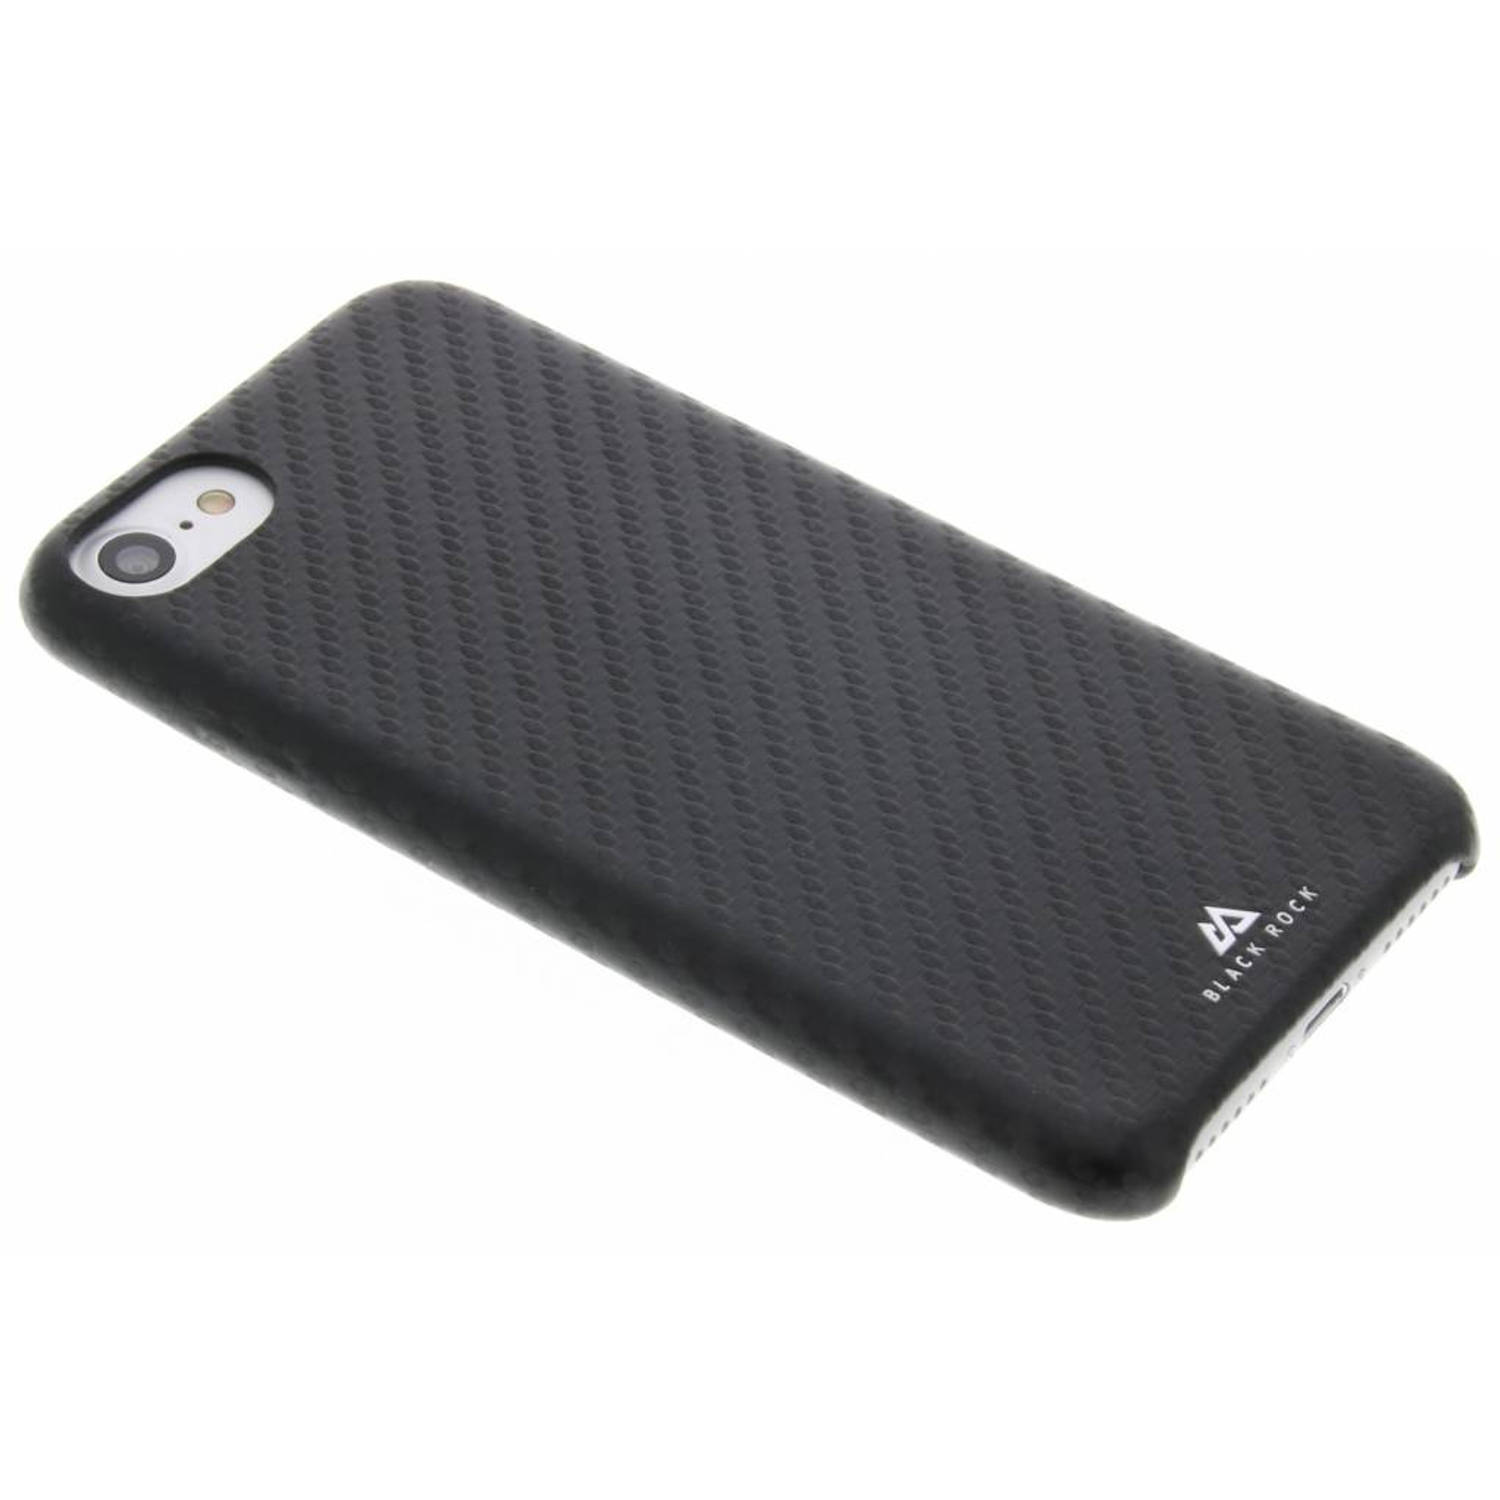 Zwarte Flex Carbon Case voor de iPhone 8 / 7 / 6s / 6